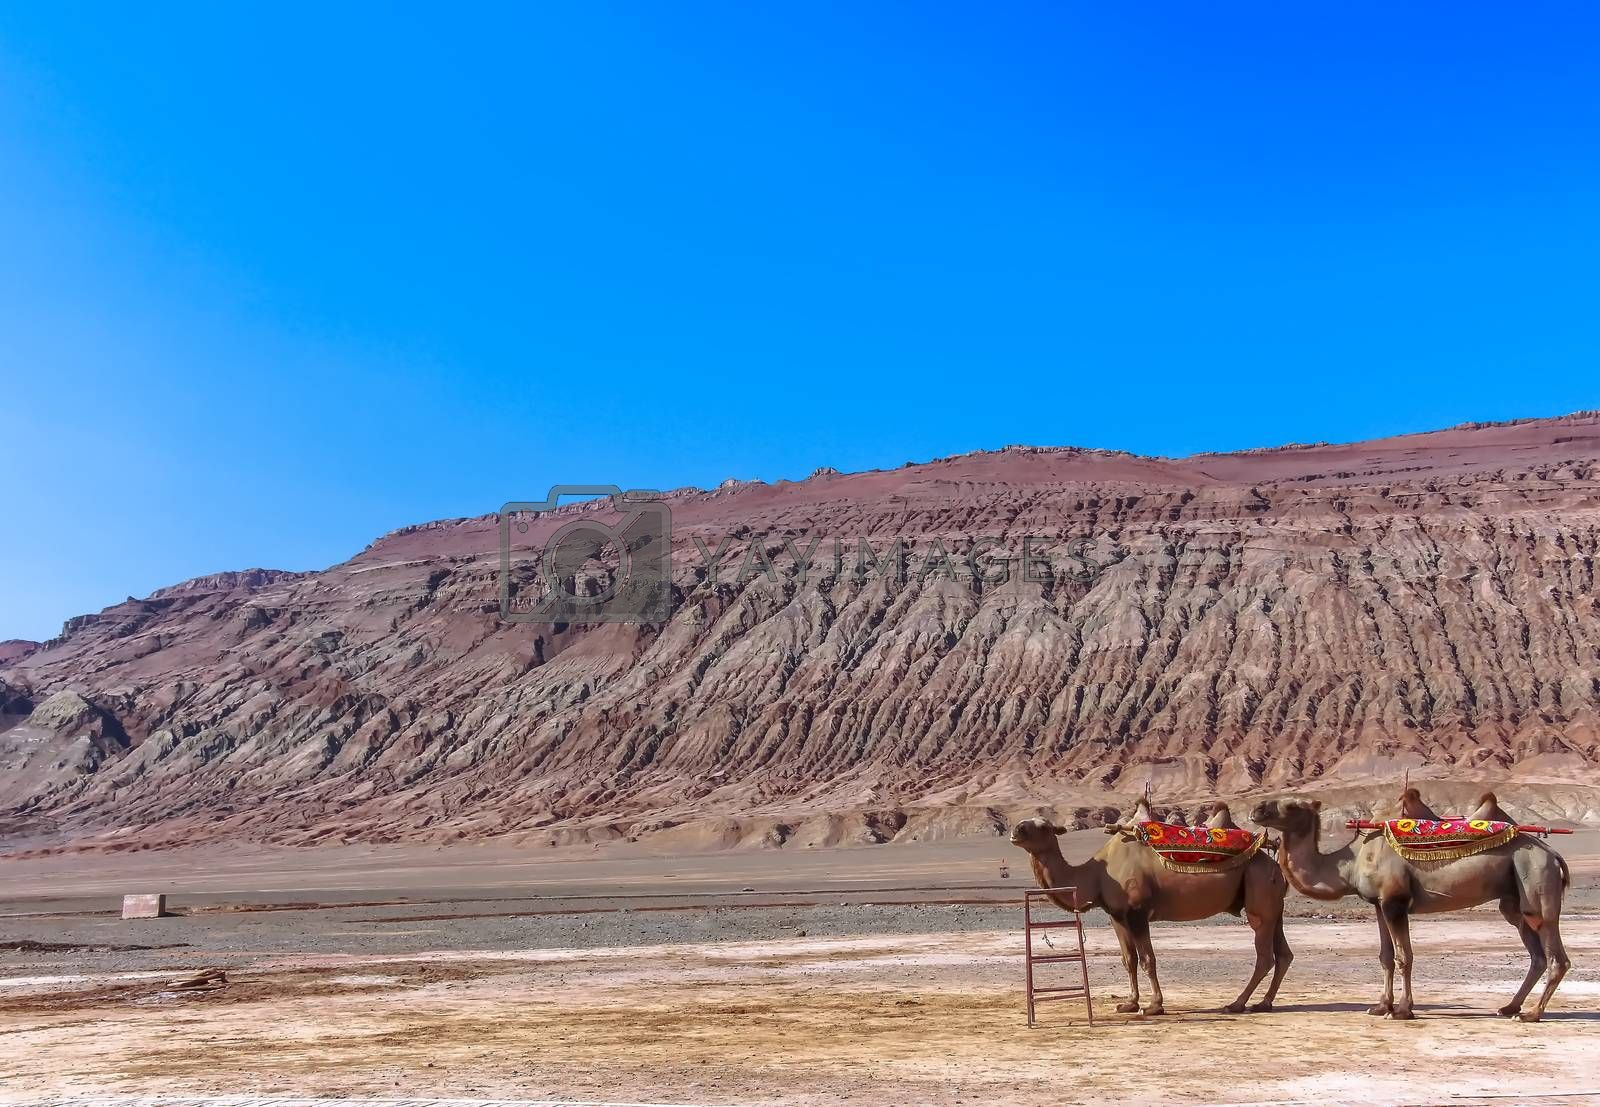 Bactrian Camels were the principal means of transportation for the historic Silk Road, now serving transportation for tourist